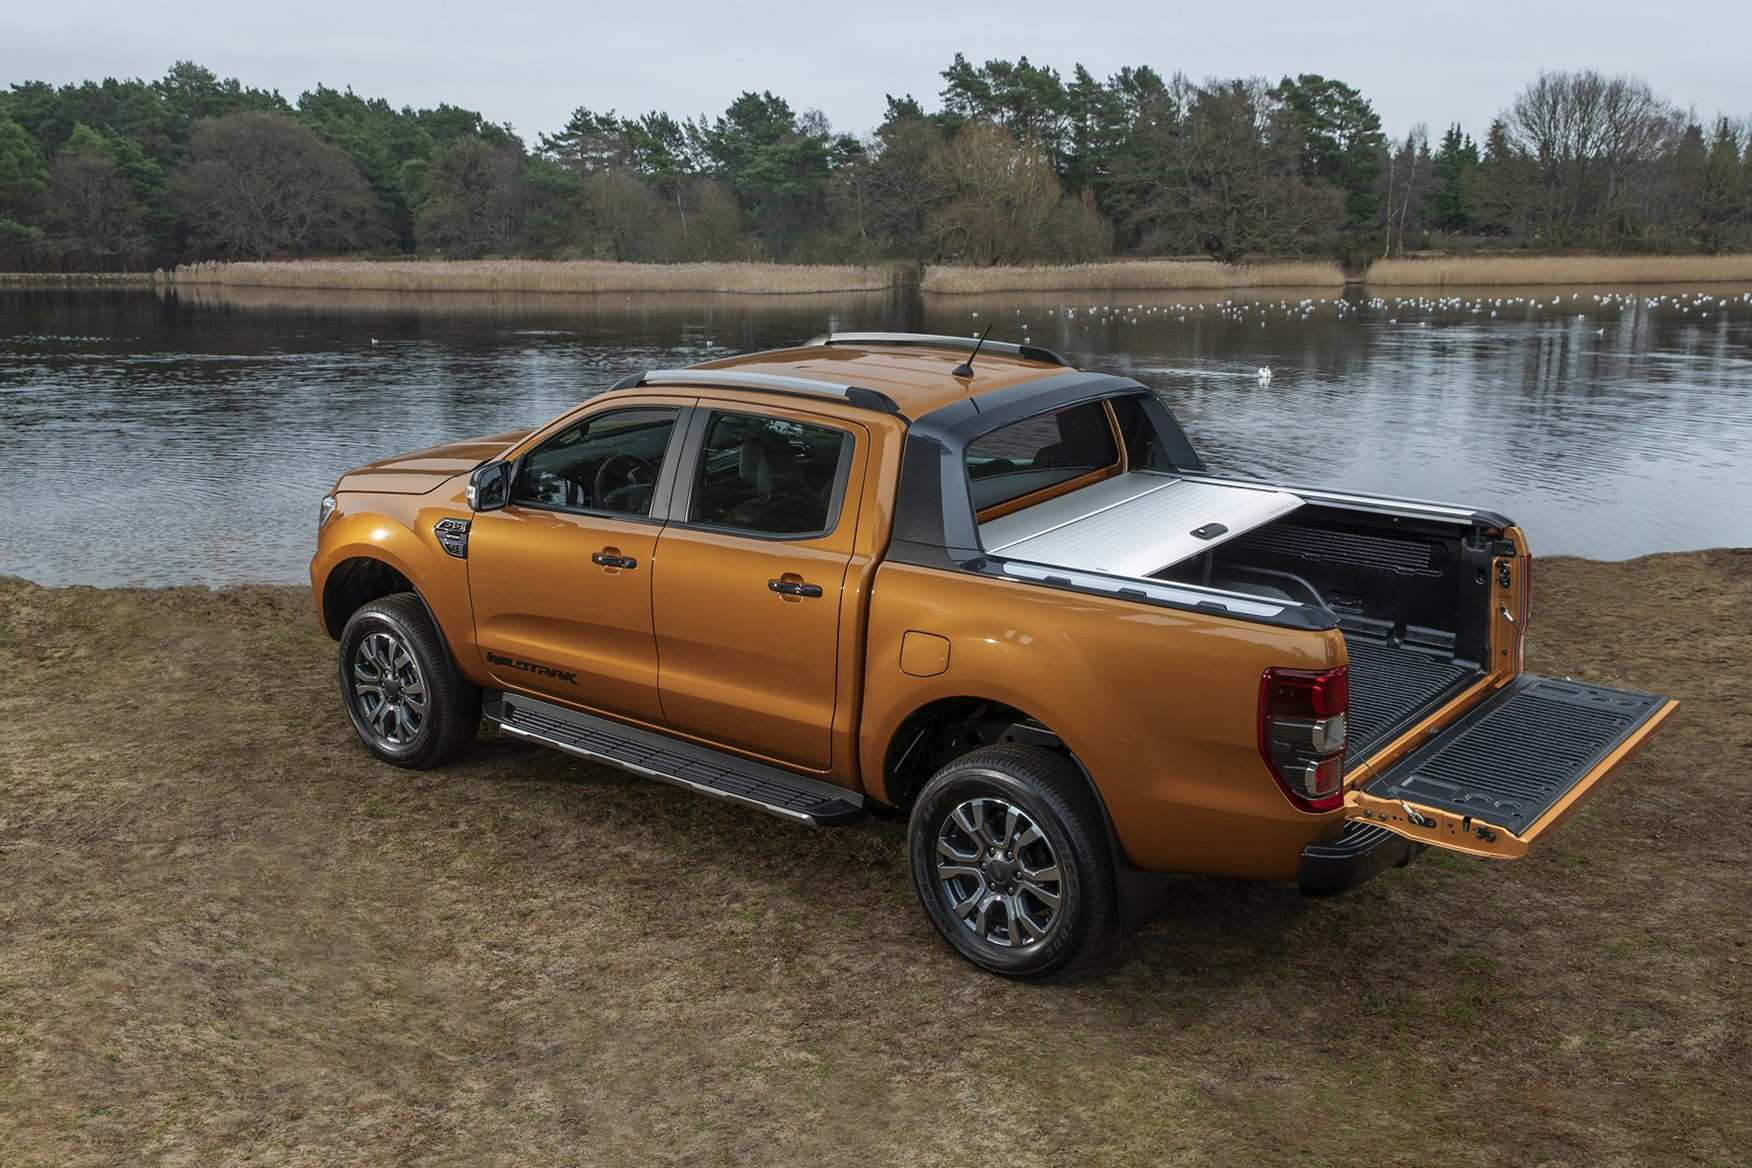 26 New Ford Ranger 2019 Specs Performance And New Engine Specs by Ford Ranger 2019 Specs Performance And New Engine